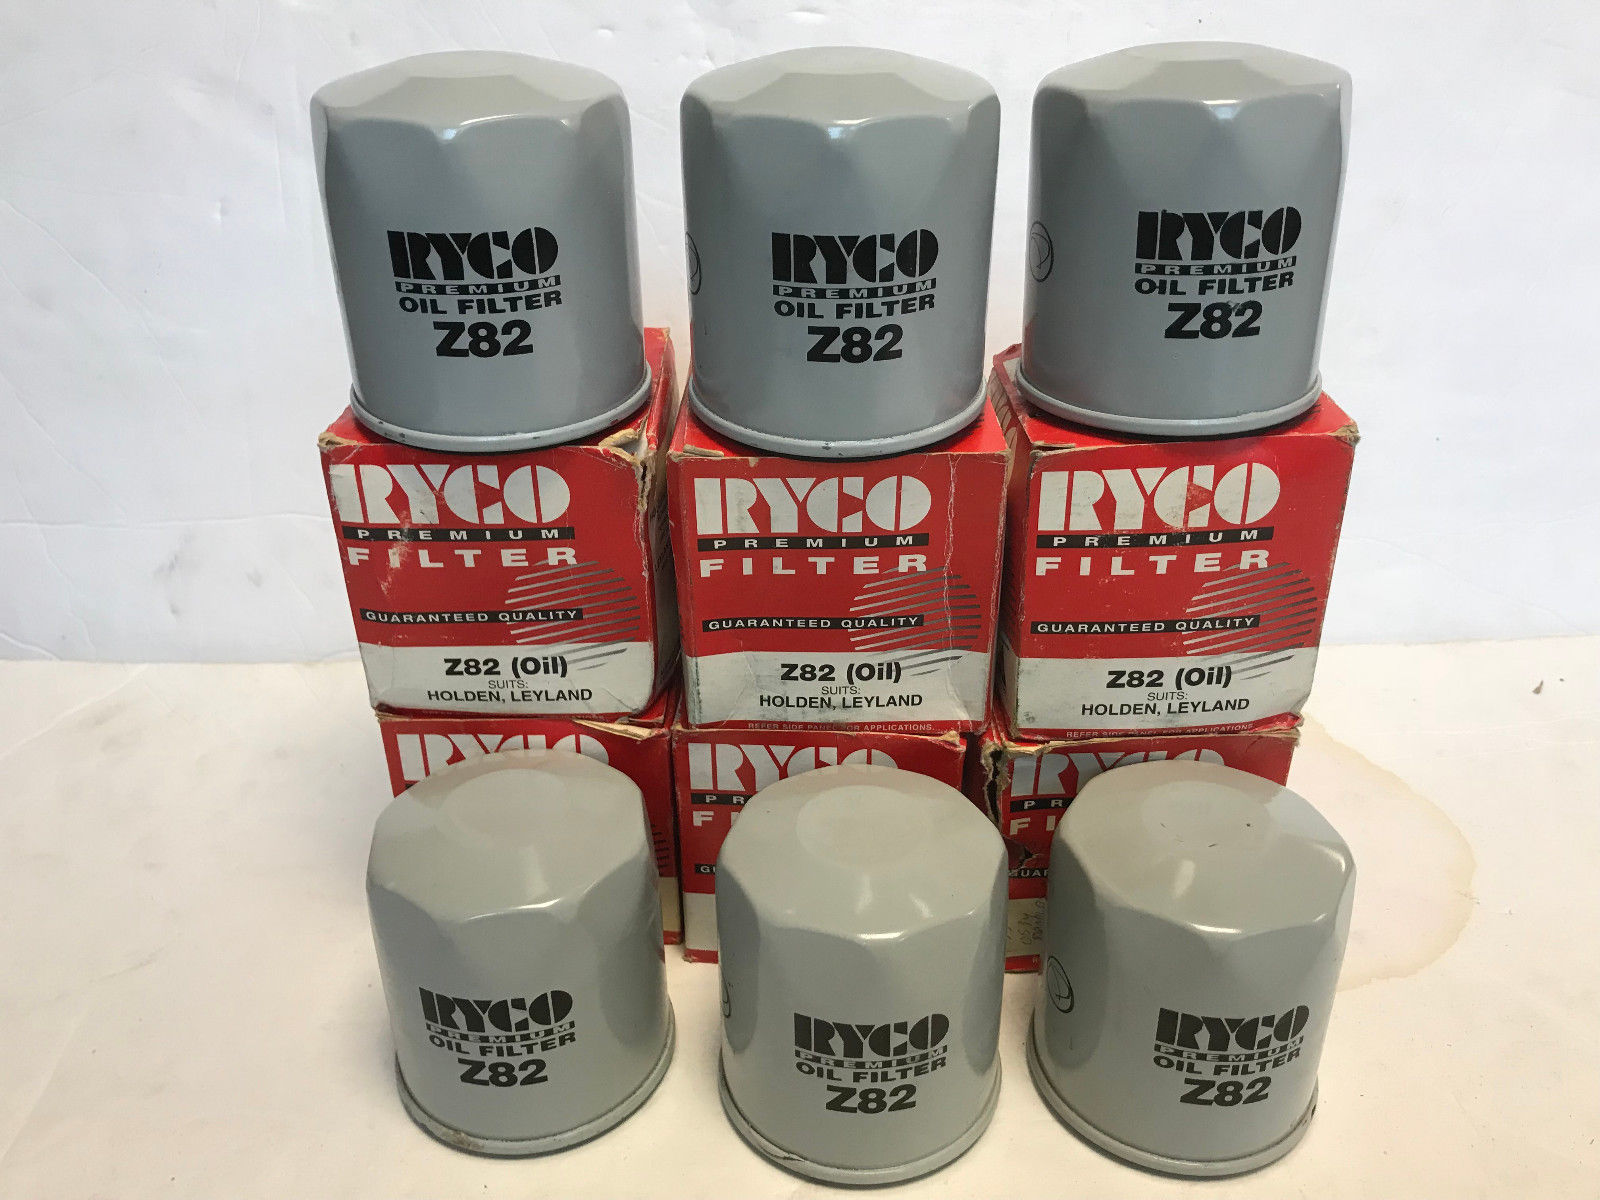 At Your Place Repair Llc Store On Buy Auto Parts 3976 Fuel Filter Lot Of 6 Z82 Ryco Oil Lf4014 Bobcat Claas Gehl Equipment Deutz